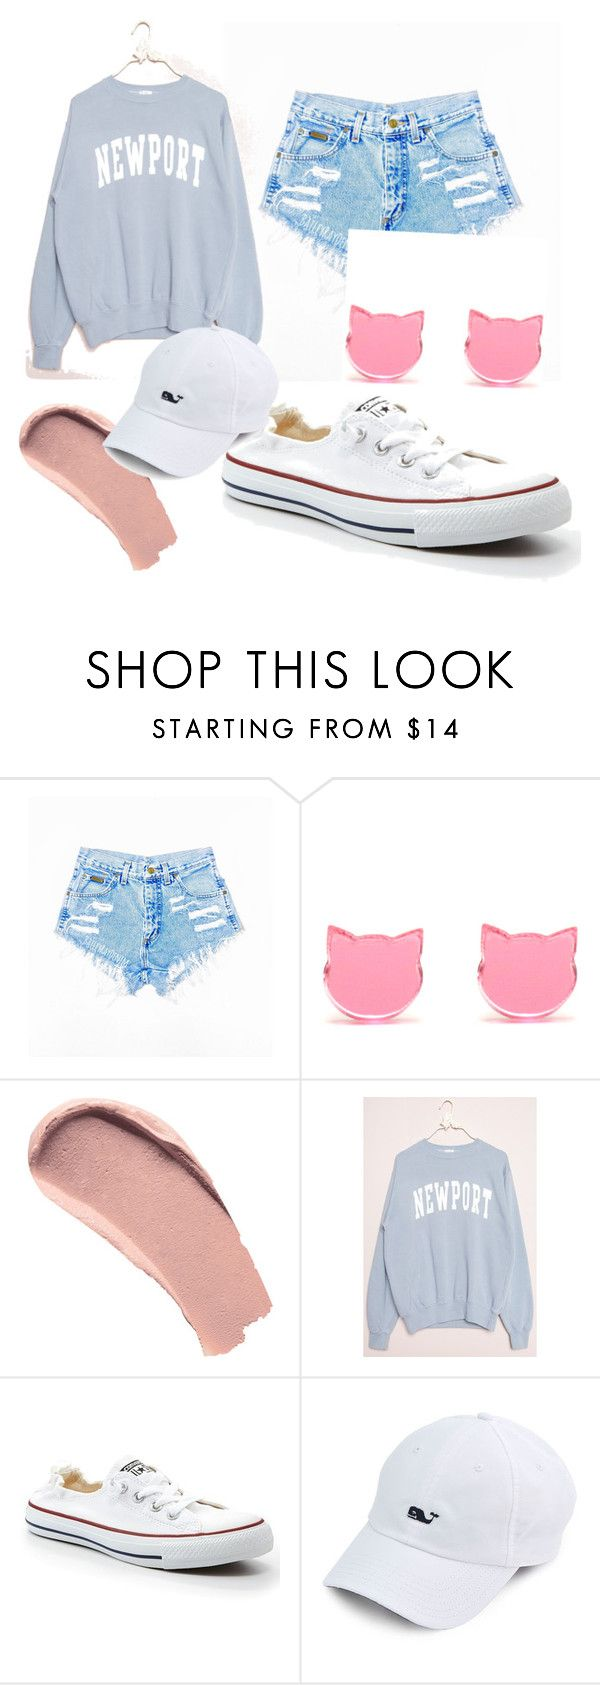 """Style"" by skylarjenkins ❤ liked on Polyvore featuring Burberry and Converse"